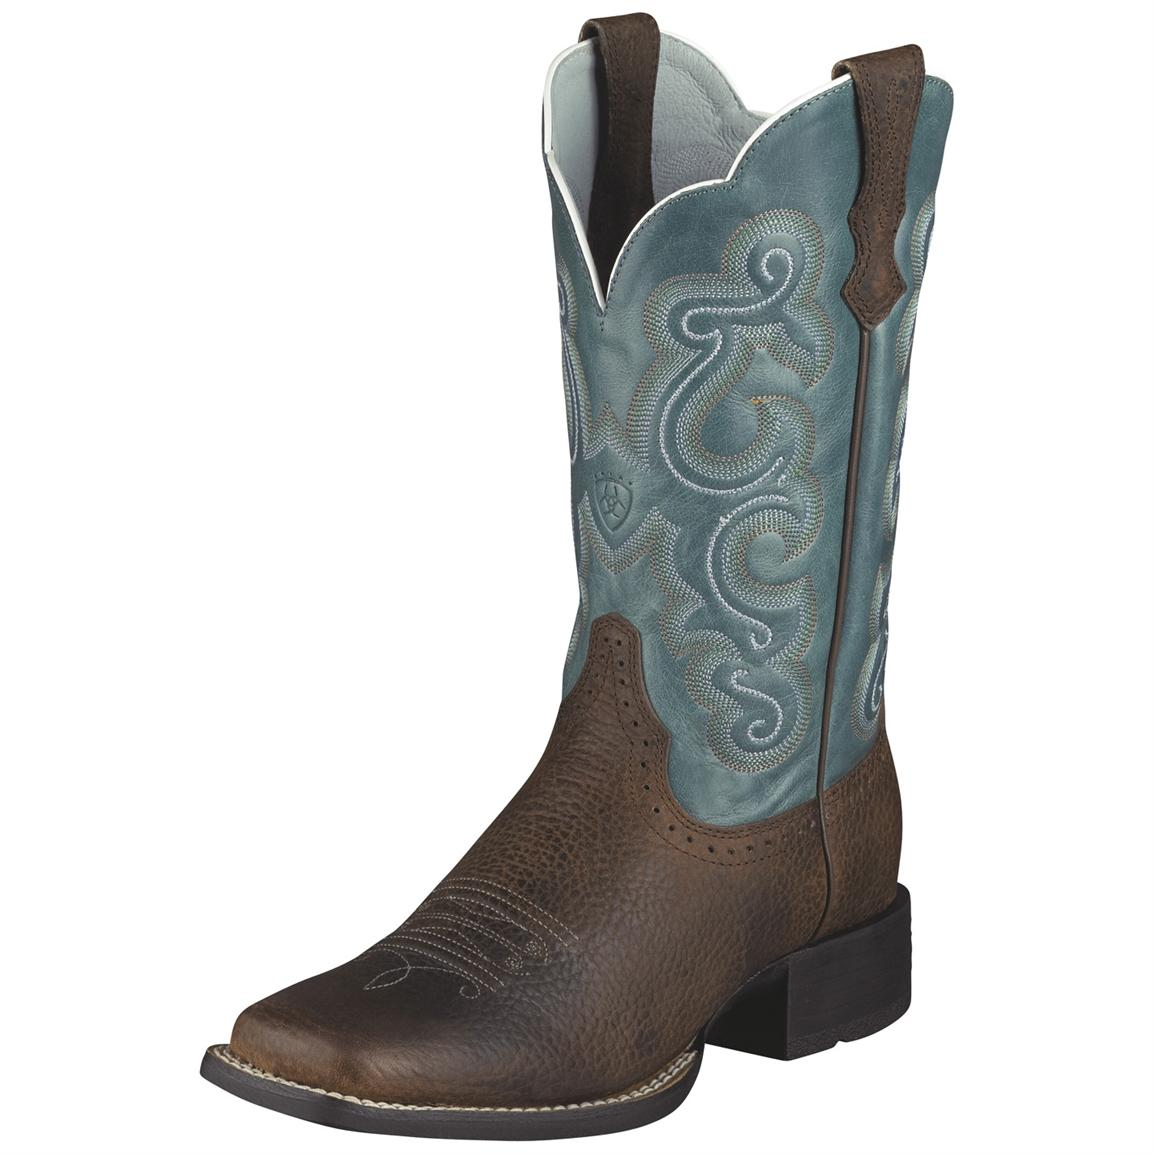 Women's Ariat® 11 inch Quickdraw Western Boots, Brown / Blue